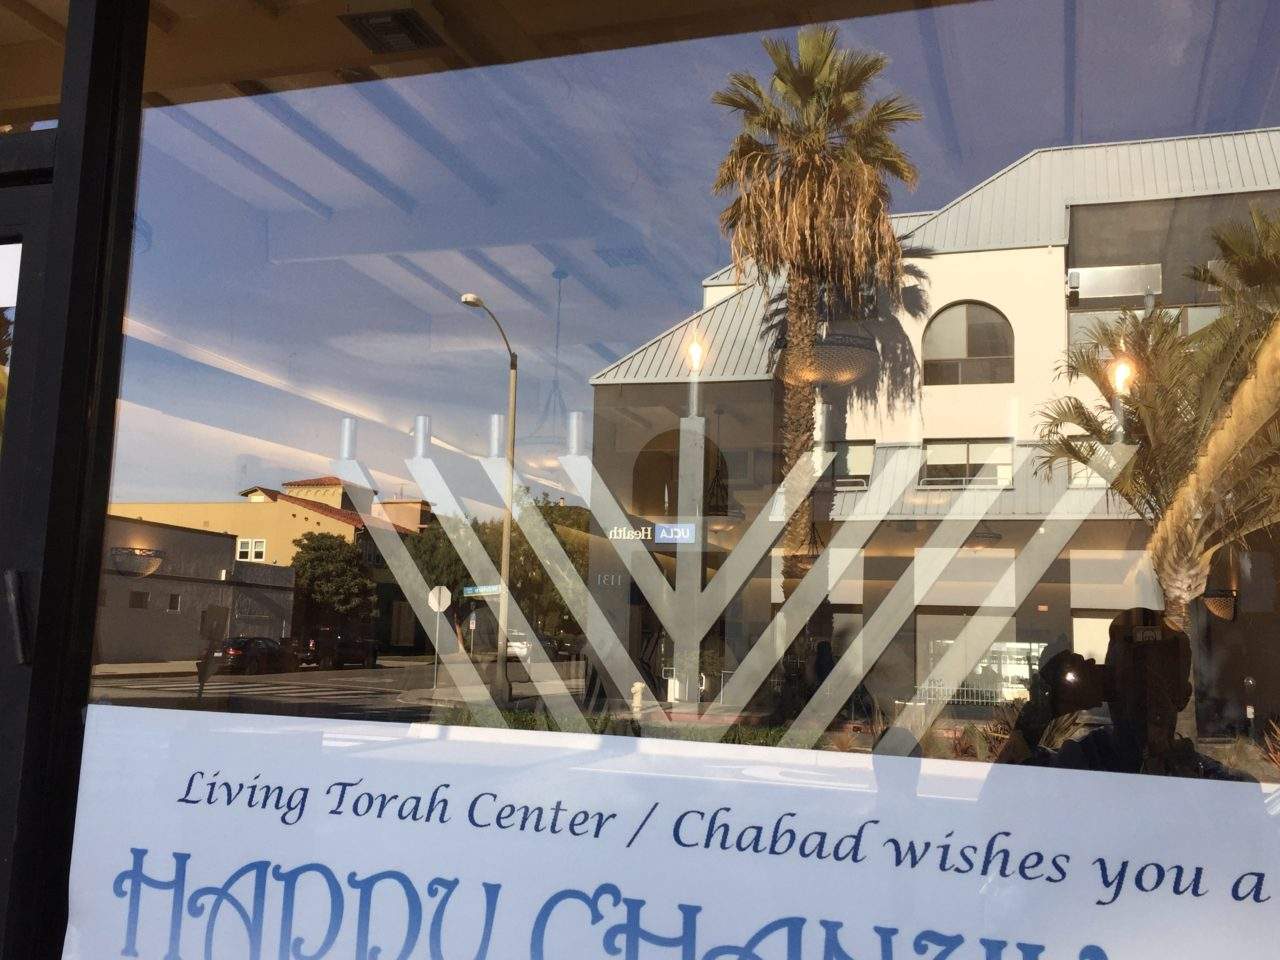 Living Torah Center Chanukah Antisemitic attack (Joel Pollak / Breitbart News)